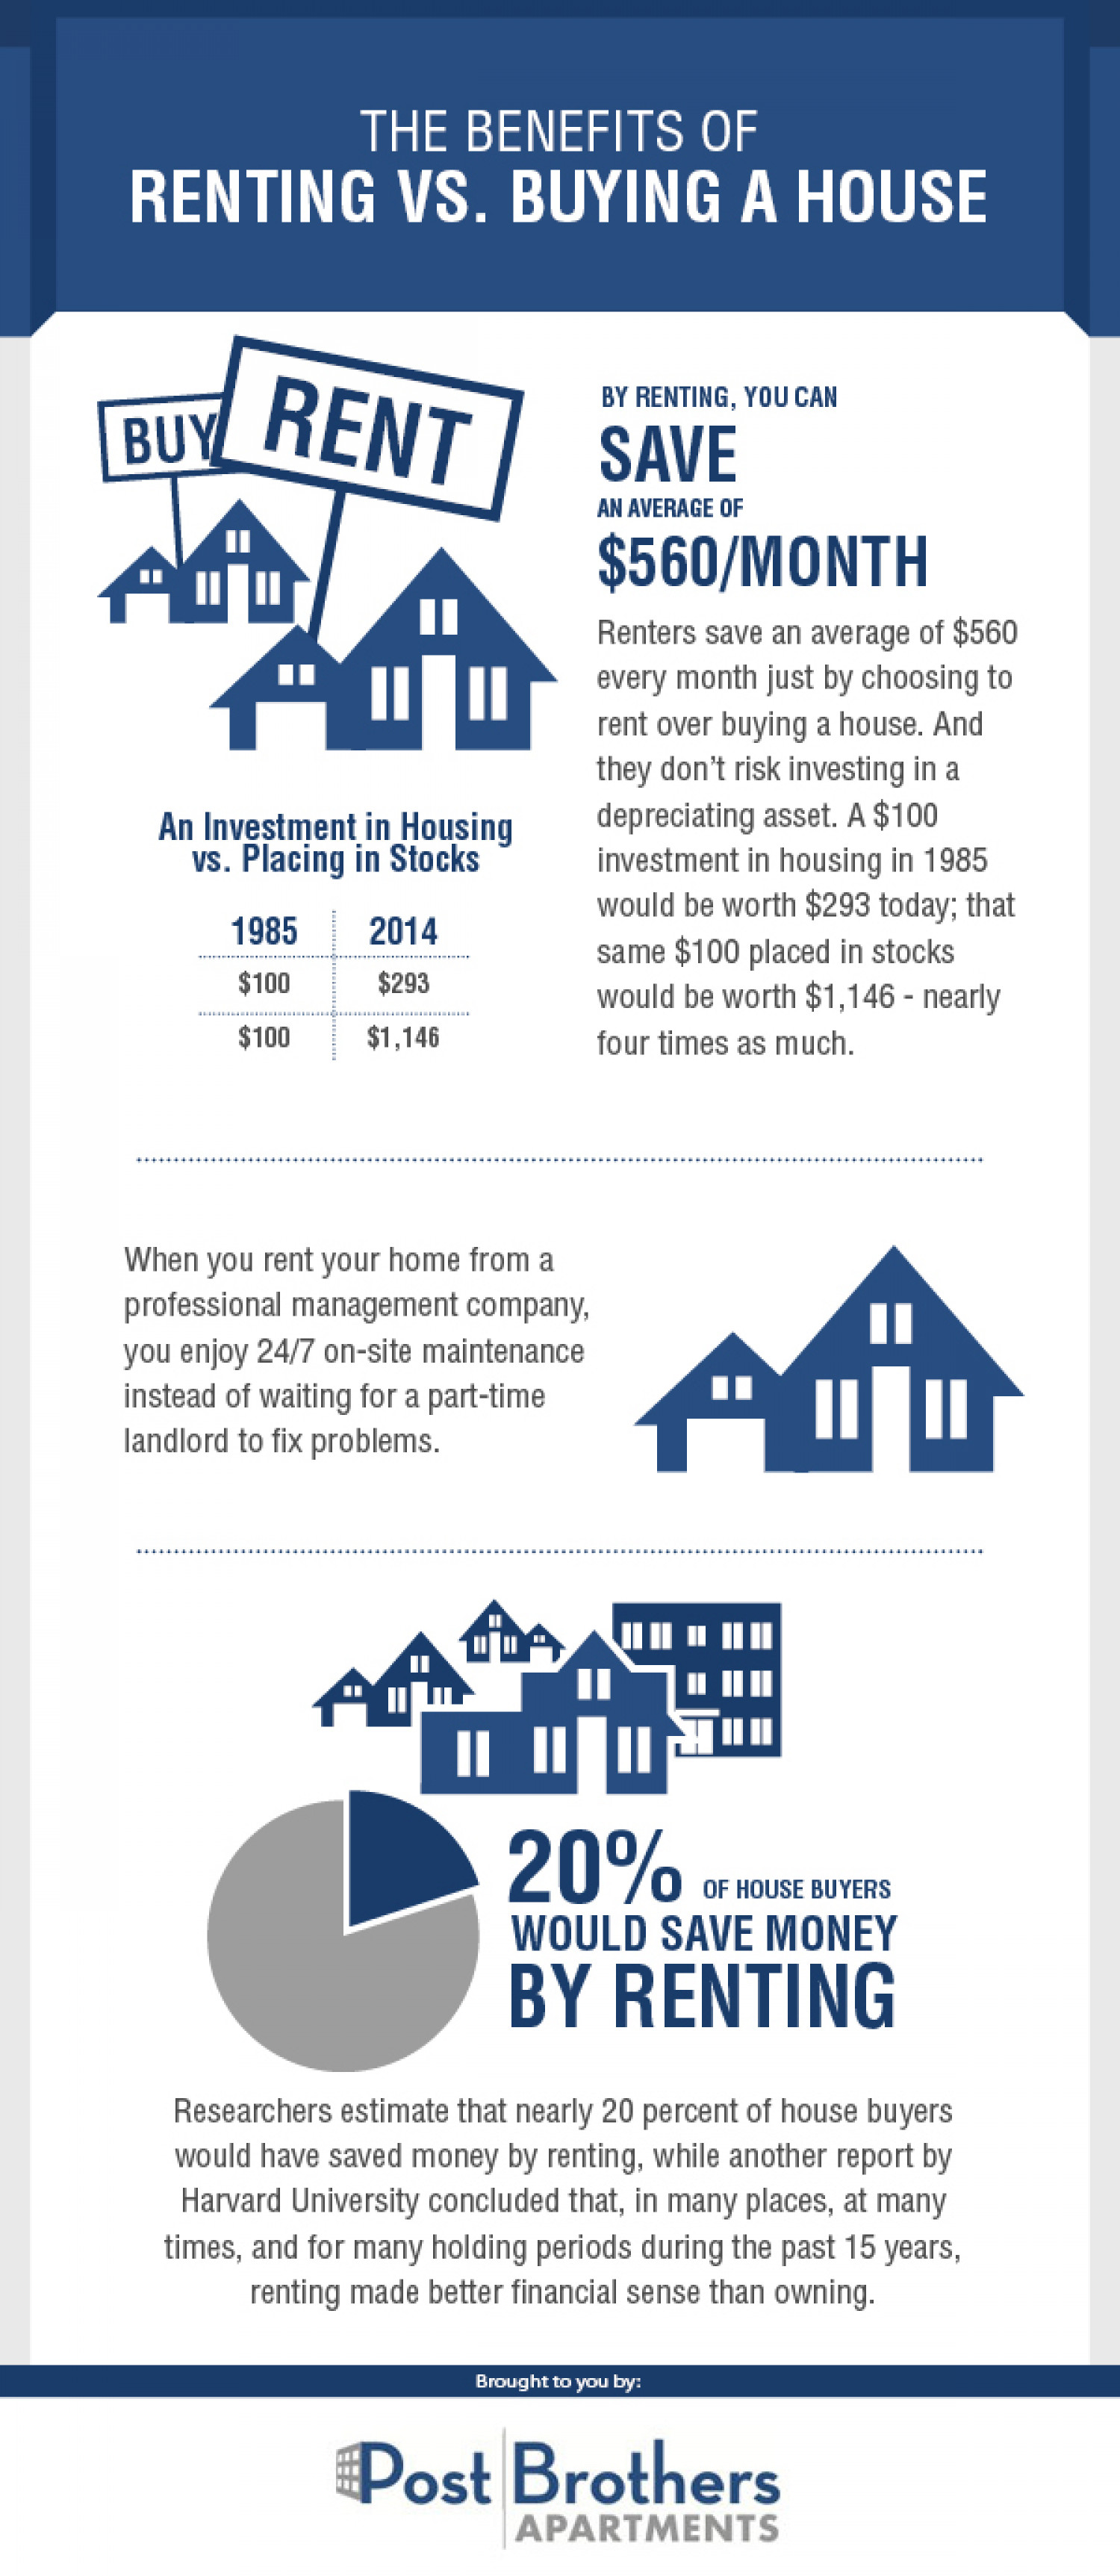 The Benefits Of Renting Vs Buying A House Infographic. Cpanel Website Builder Arms Laser Liposuction. Telephone Switchboard Systems. Small Business In Healthcare. Best Insurance For College Students. School Of Public Health Umd Roof Line Styles. Microsoft Access Project Management. Cash Loans With Bad Credit Willow Tv Schedule. What Cable Companies Service My Address